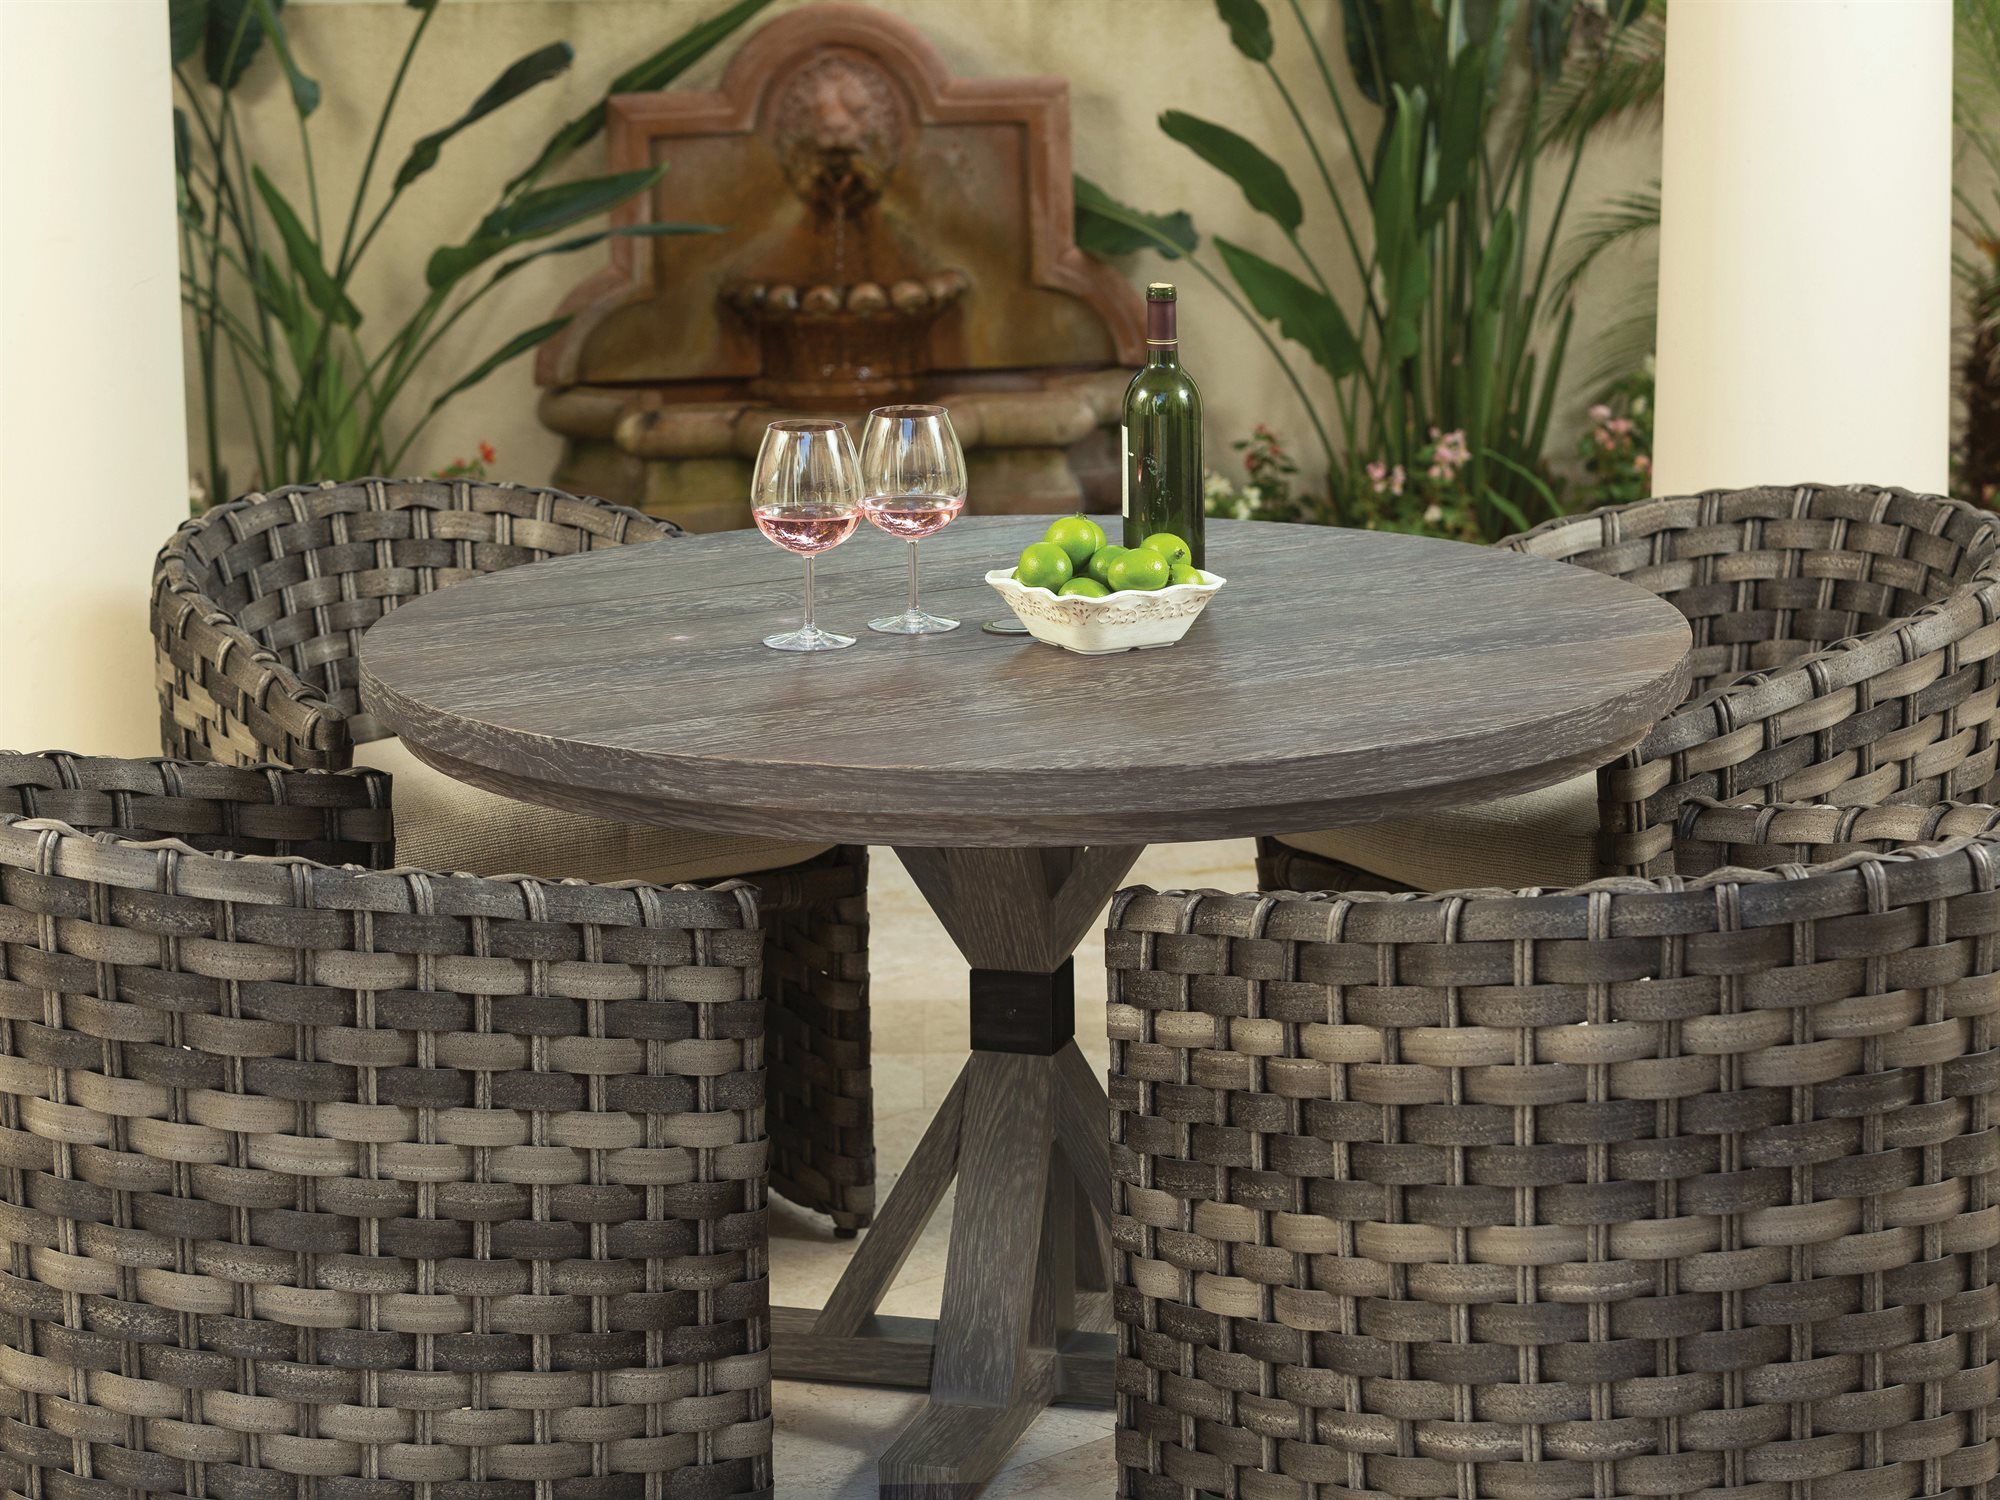 Ebel Lago Aluminum 48 Wide Round Dining Table With Umbrella Hole Ebl894 Wicker Dining Set Dining Table Patio Furnishings [ jpg ]